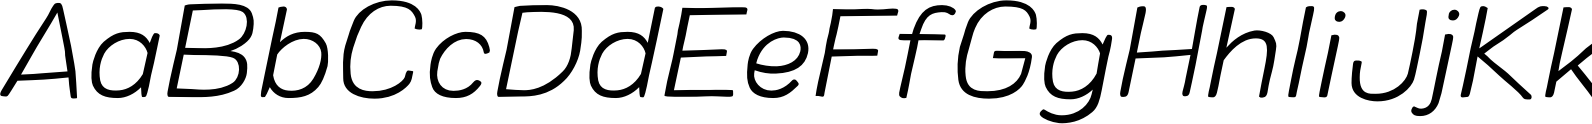 Colby Extended Extra Light Italic Font